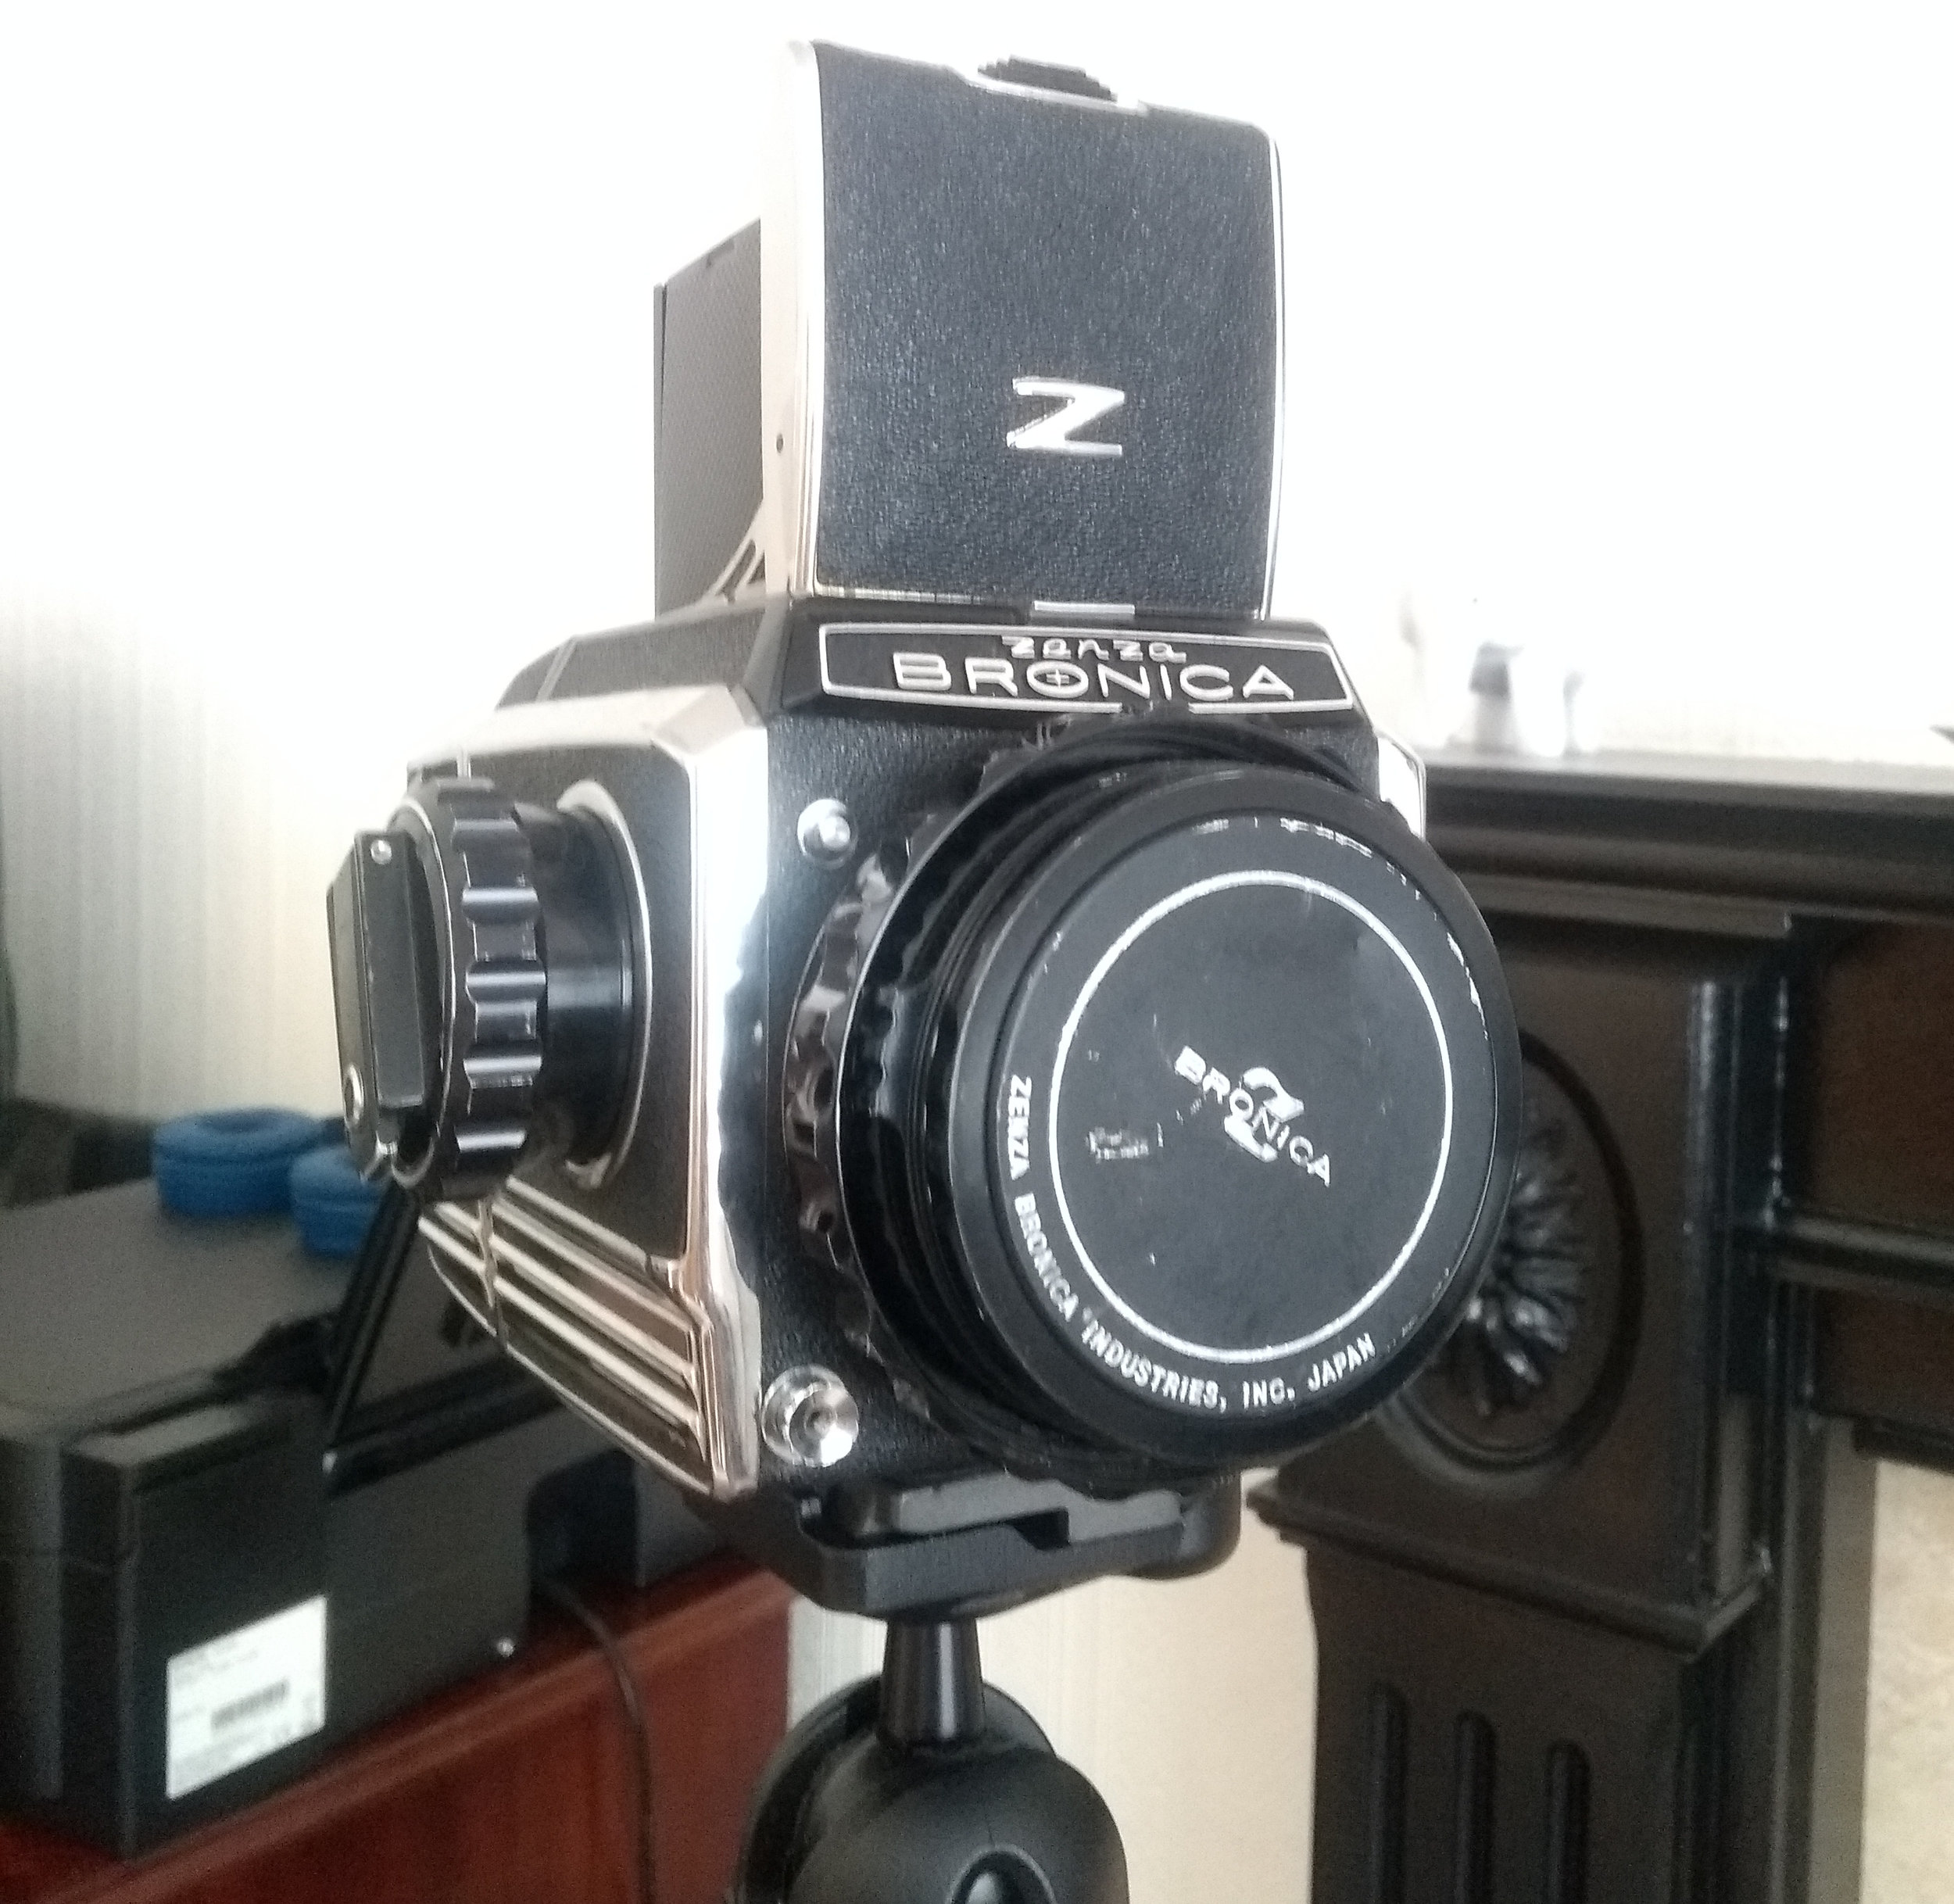 My Zenza Bronica S2A, In Working Order At Last.